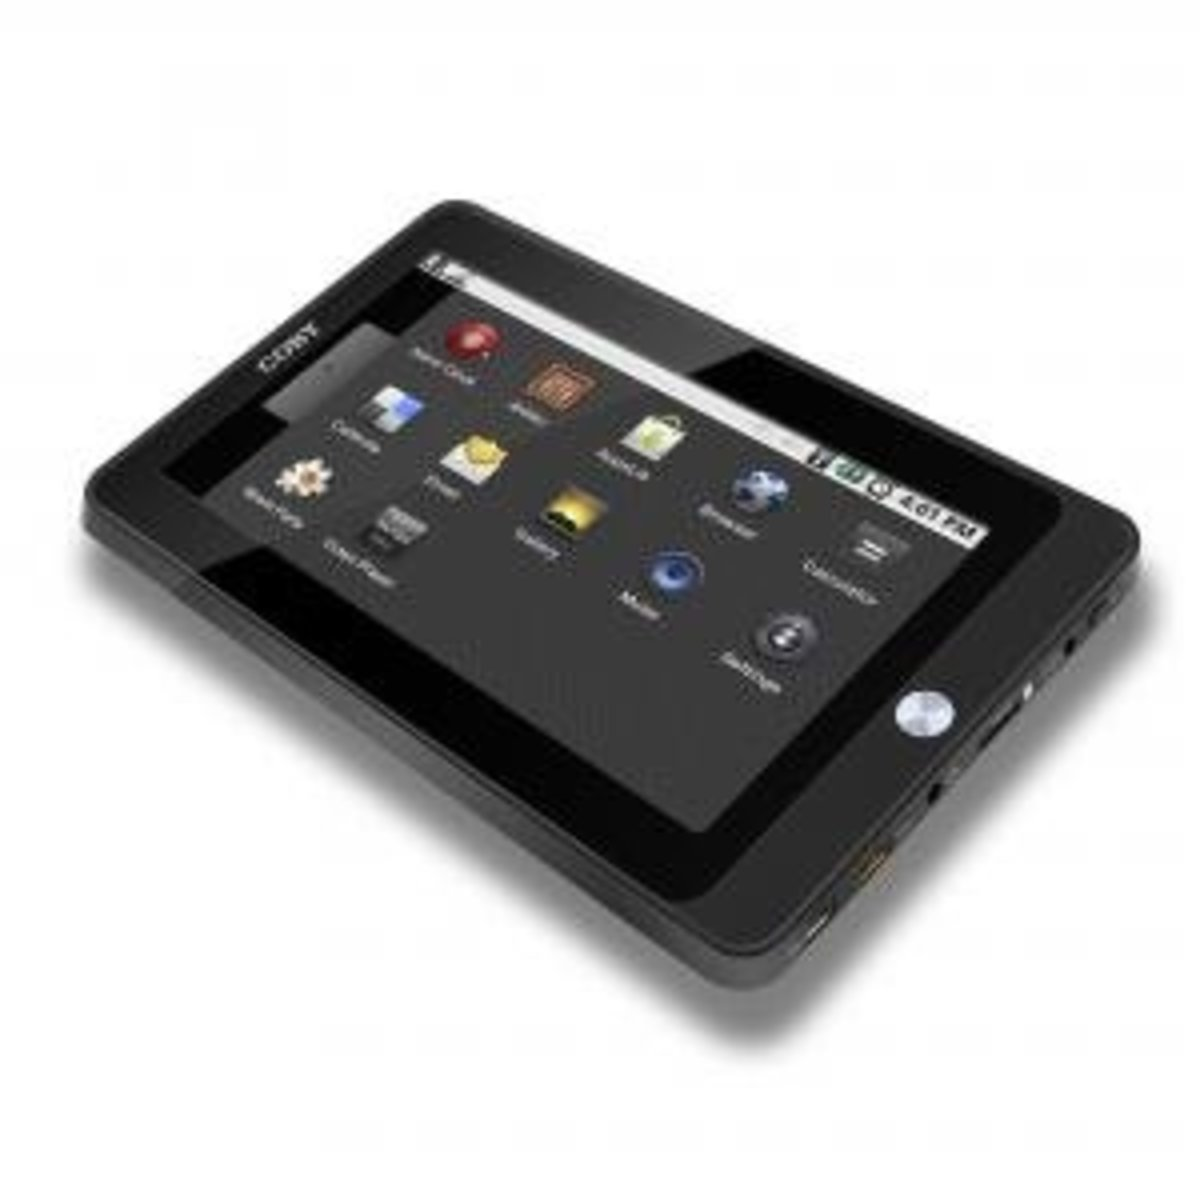 Coby Kyros tablets offer a light version of the Android operating system and are available in a variety of sizes.